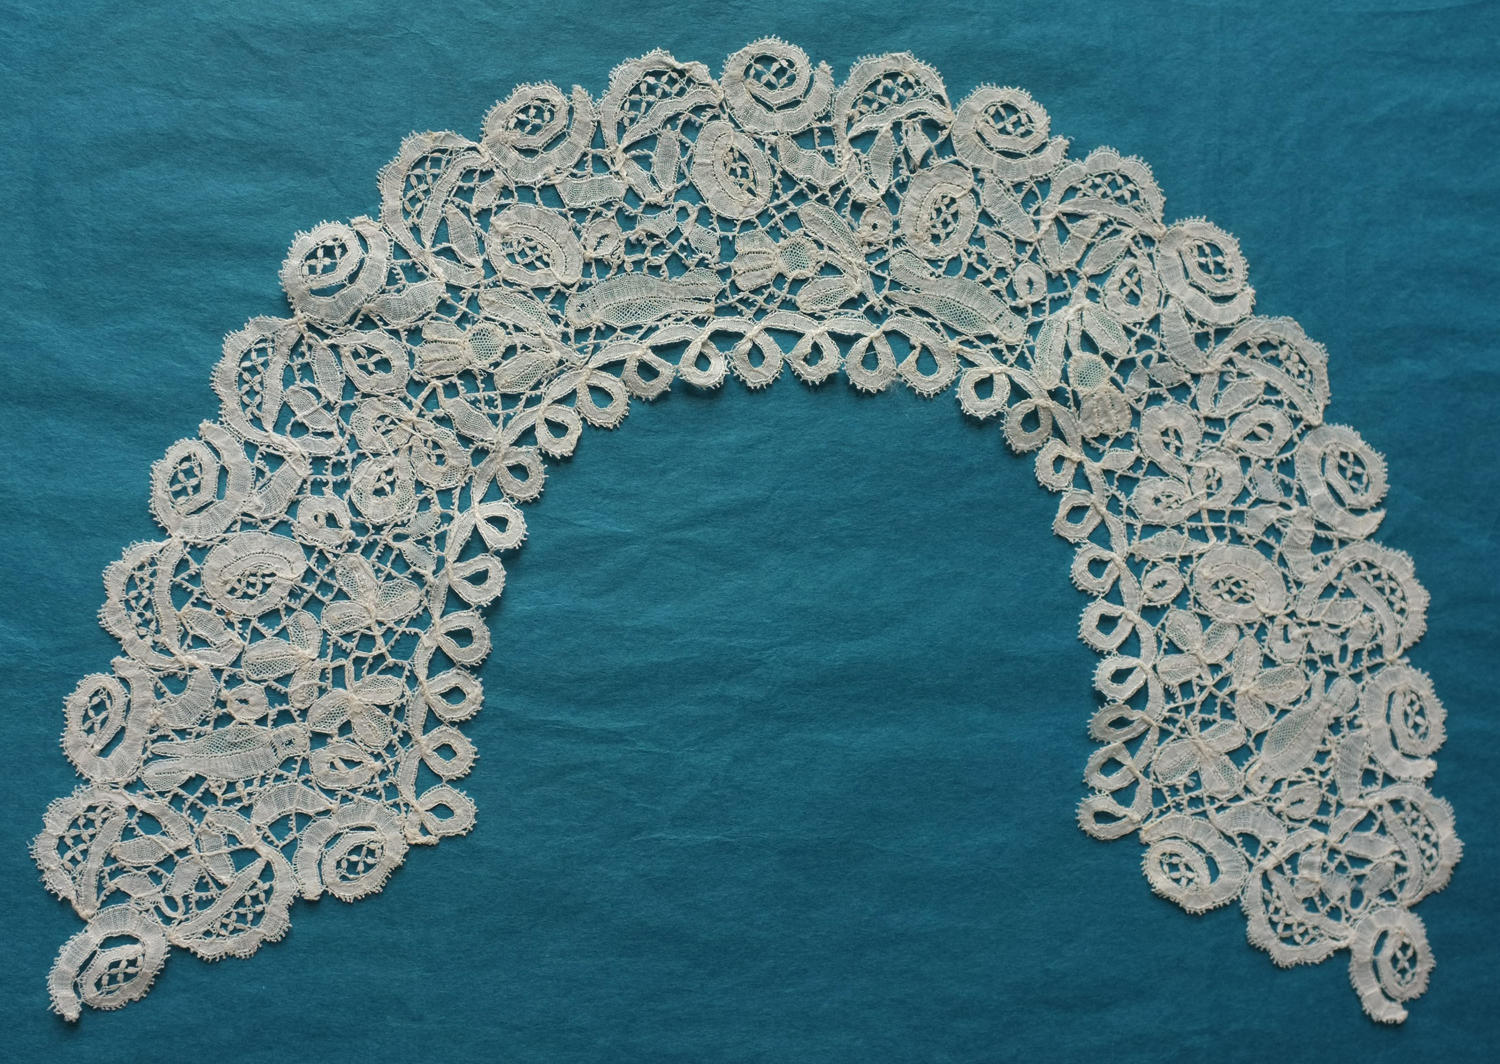 Antique Honiton Lace Collar with 4 Birds